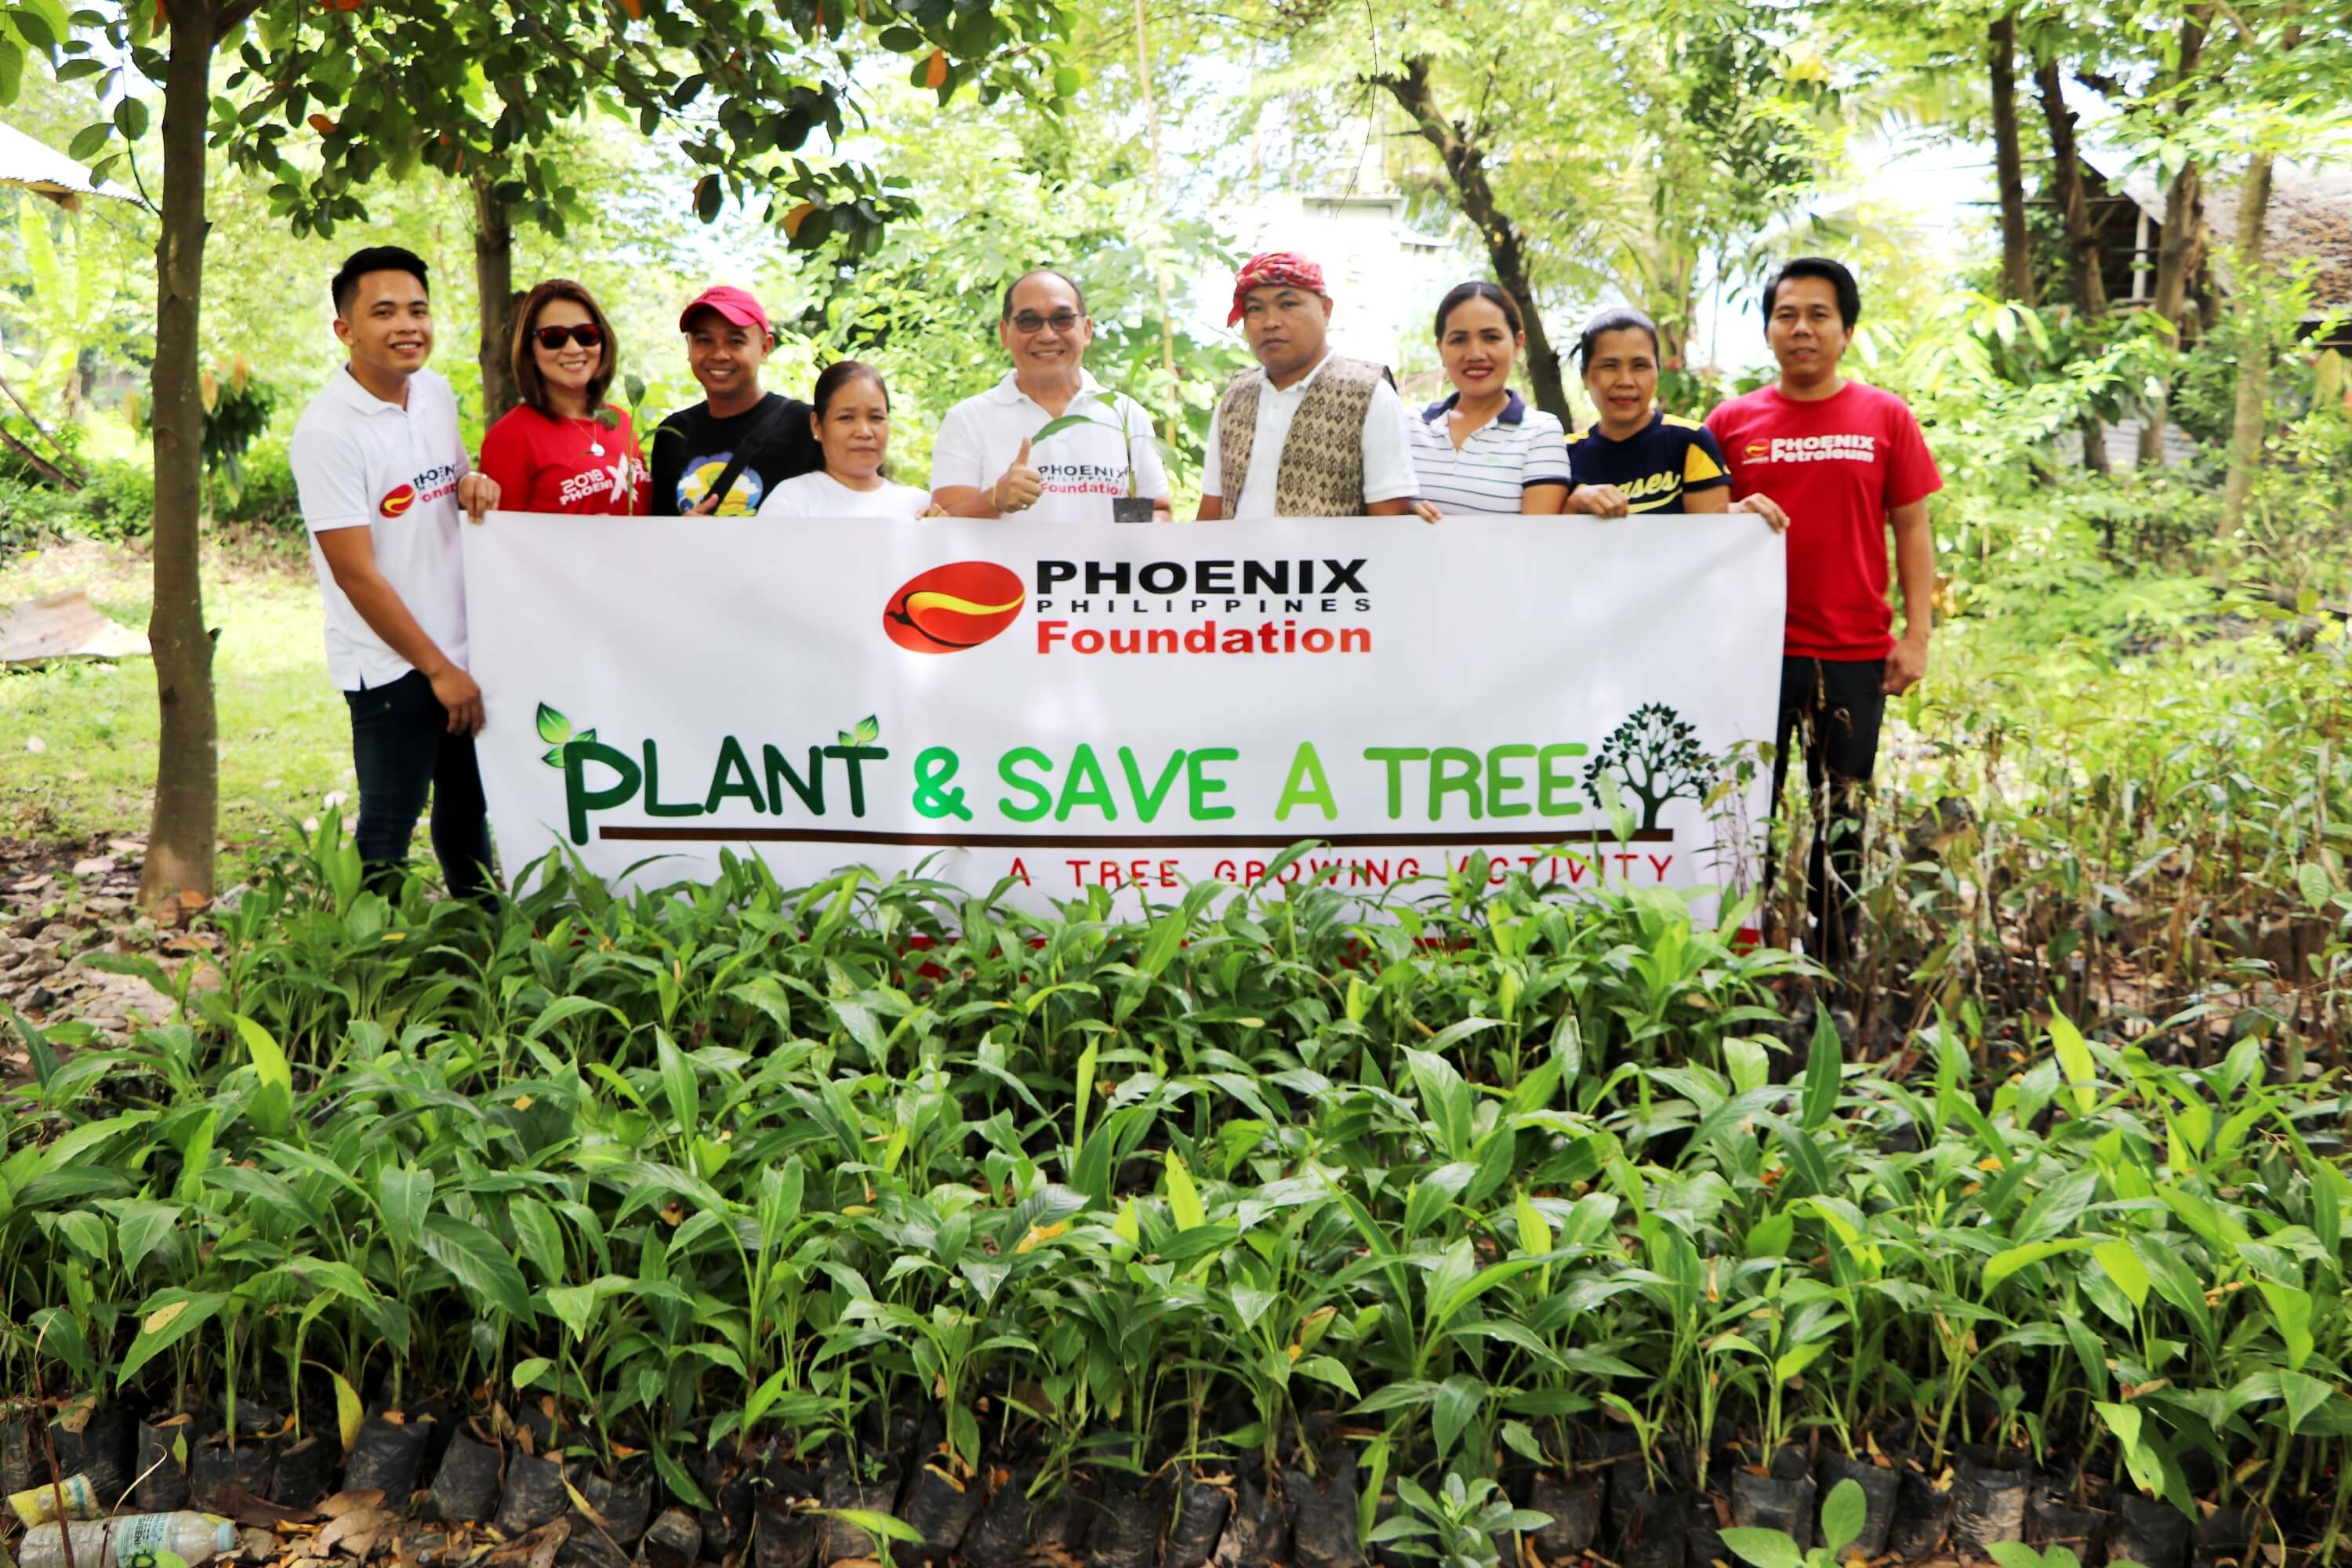 Phoenix Petroleum plants trees in Koronadal, South Cotabato